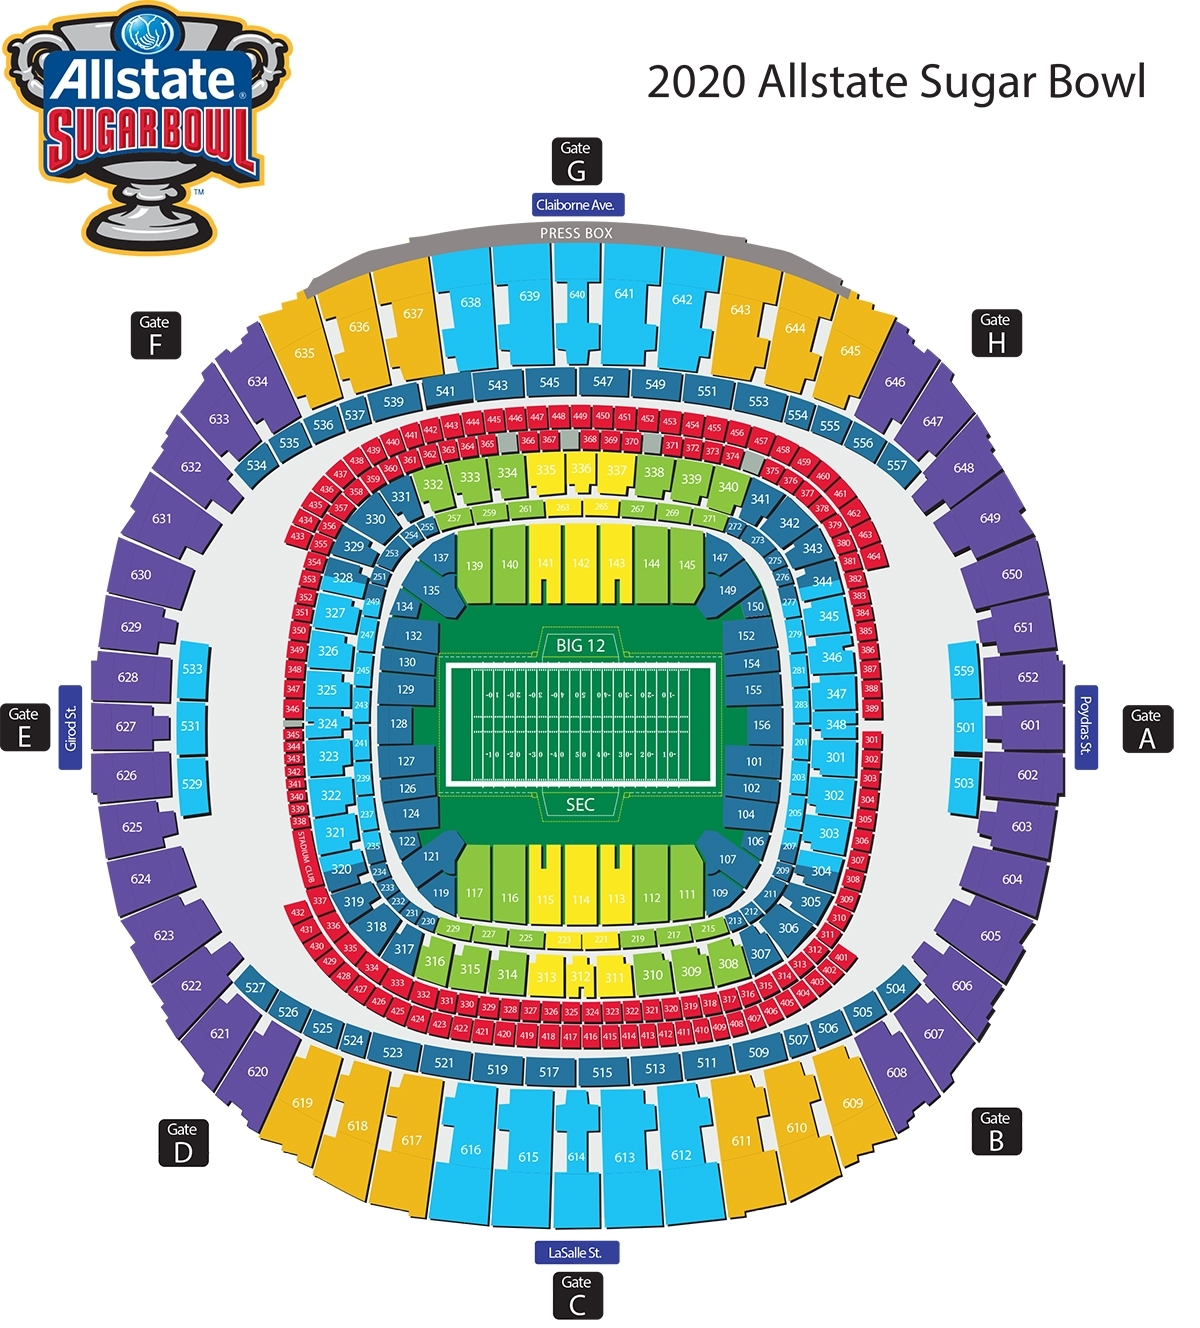 Seating Diagram - Official Site Of The Allstate Sugar Bowl throughout Mercedes Benz Stadium Super Bowl Seating Chart